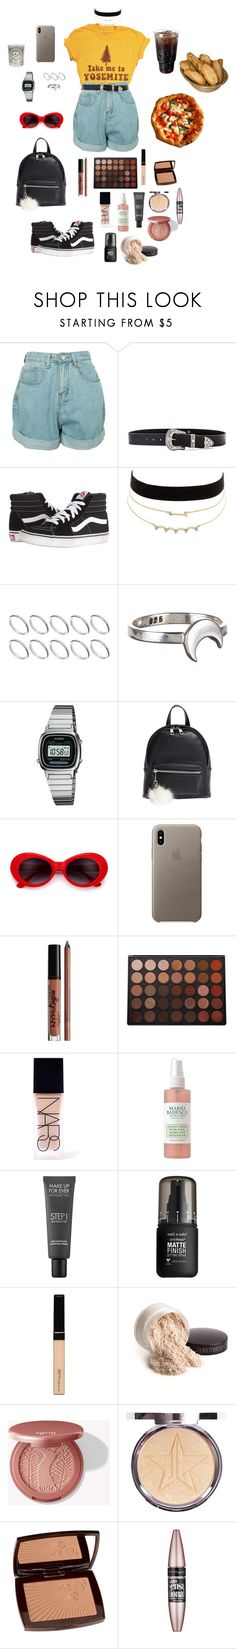 """It's a lot to ask"" by shellygeigel ❤ liked on Polyvore featuring B-Low the Belt, Vans, Charlotte Russe, ASOS, Grace + Scarper, Casio, BP., Morphe, NARS Cosmetics and Mario Badescu Skin Care"